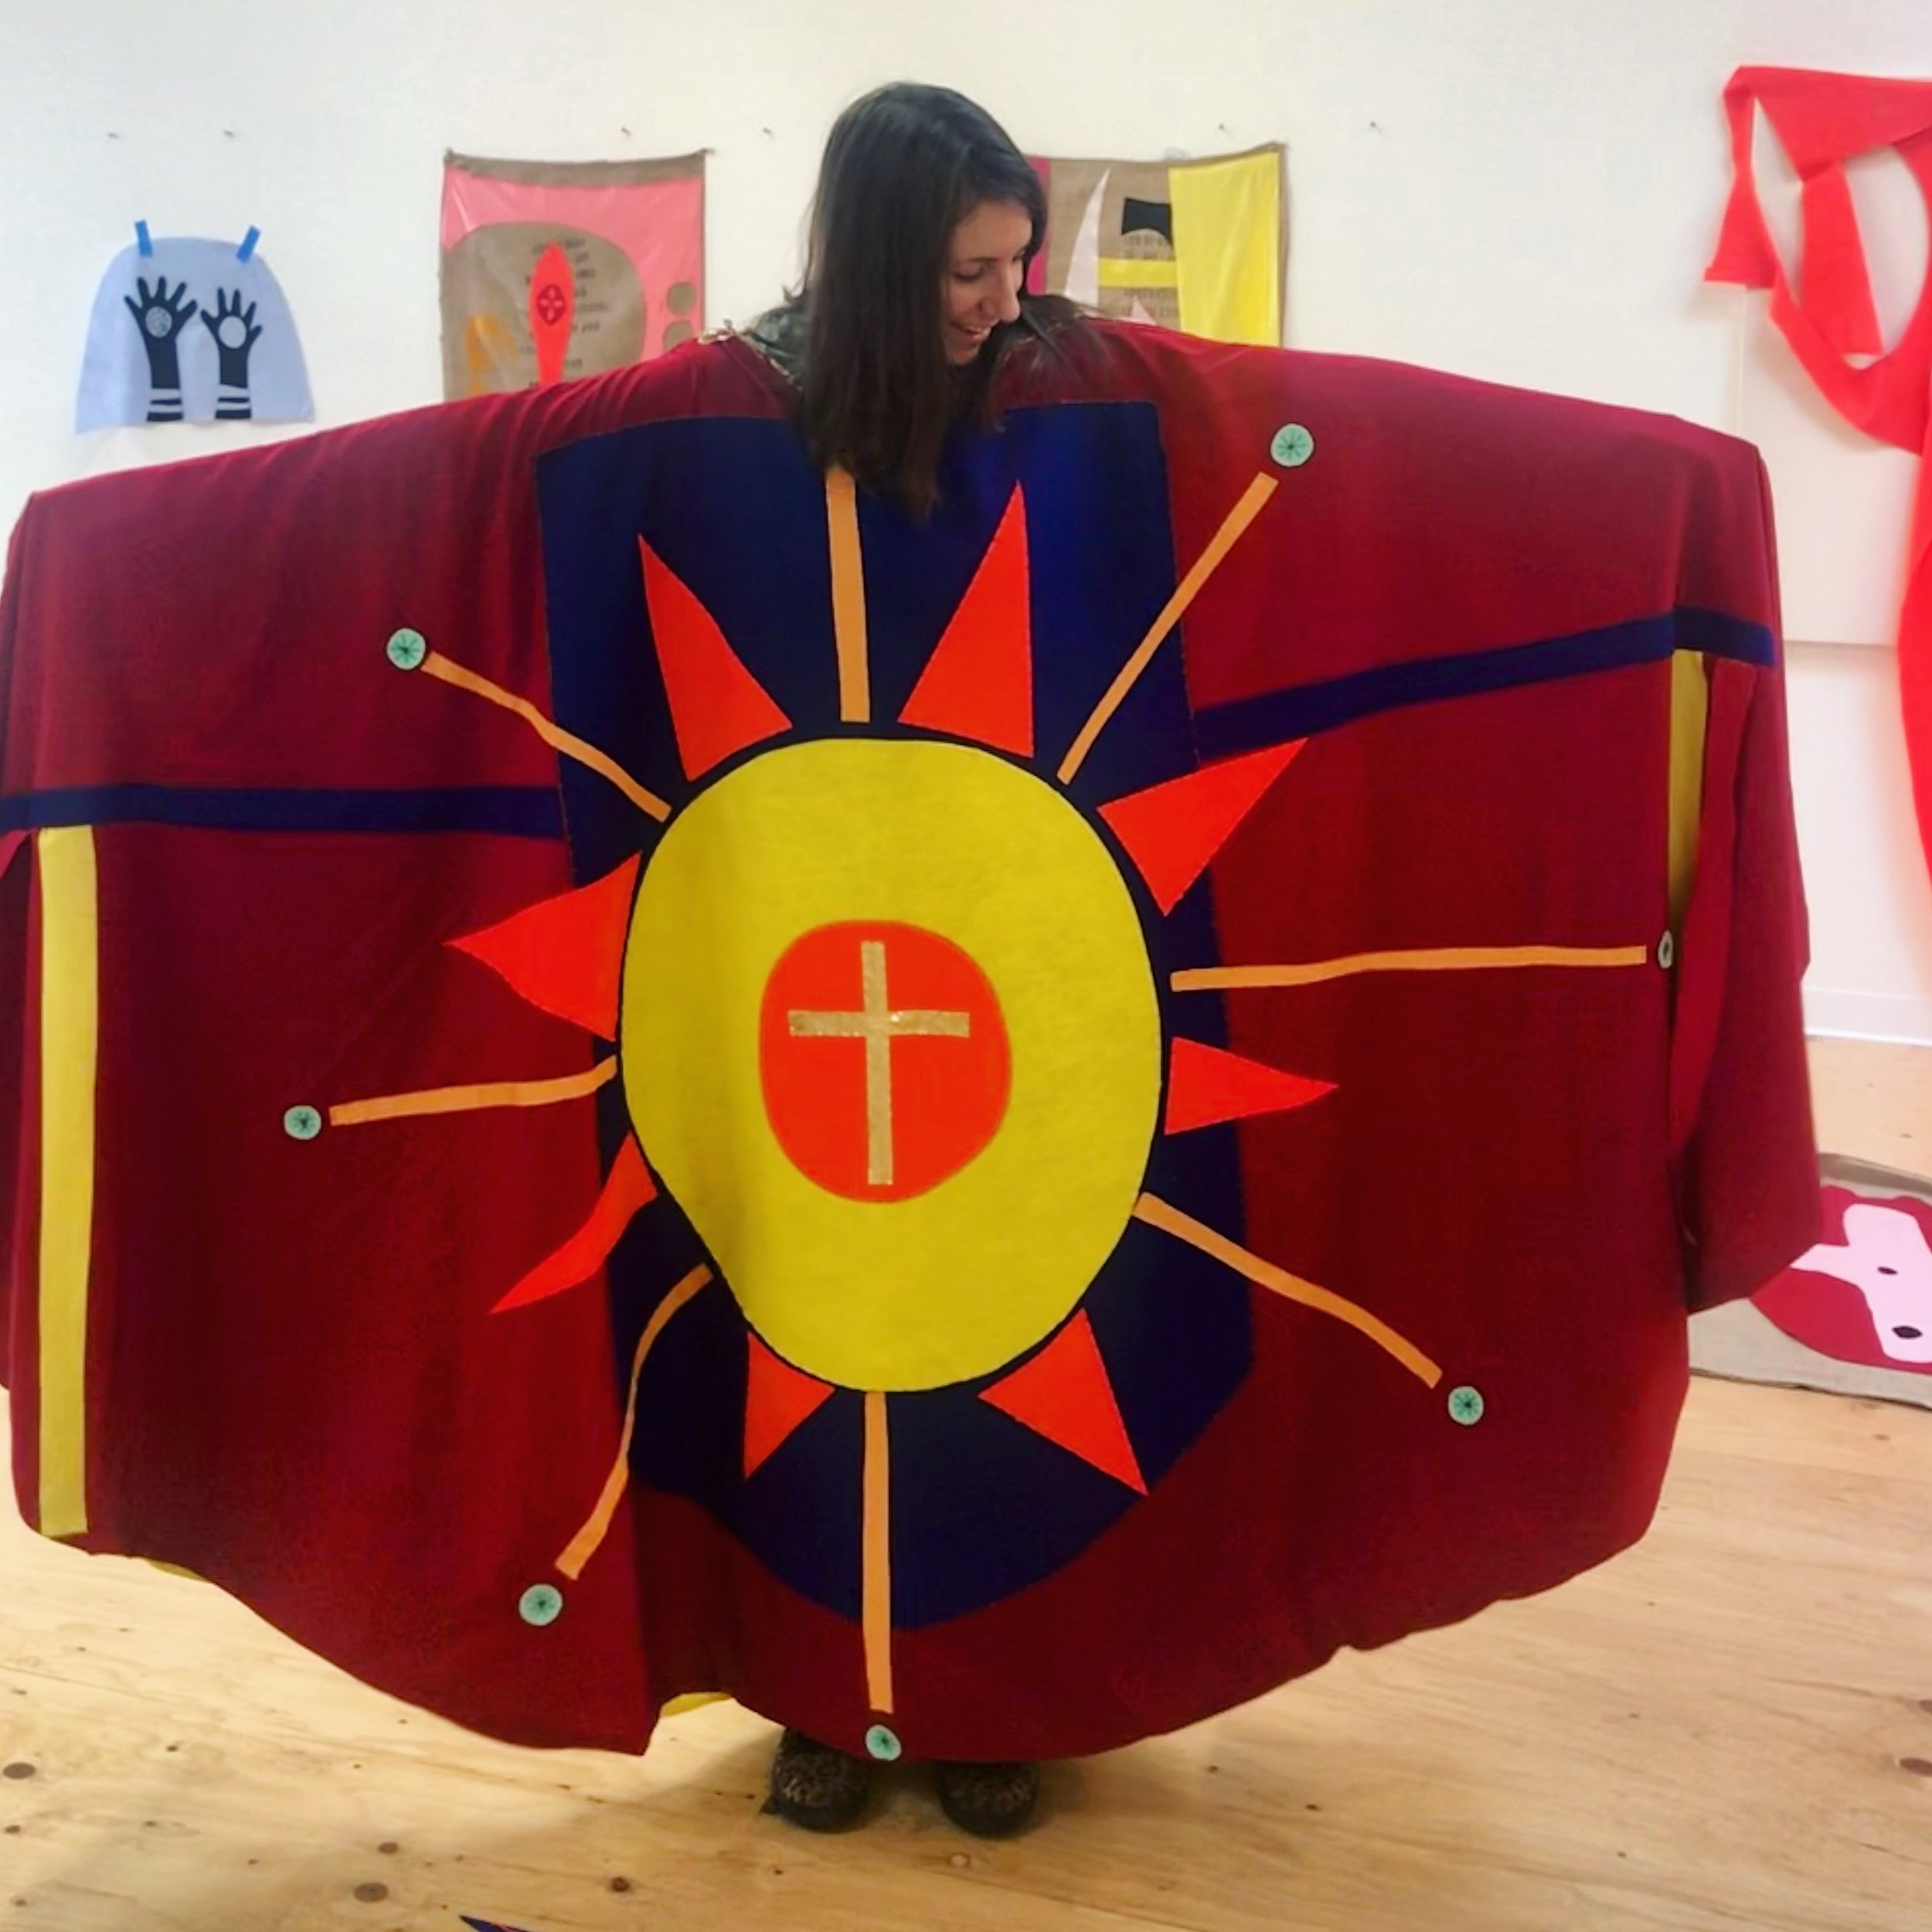 Inside the  Anti-Deportation Cape  at Megan Craig's Studio, January 2019.